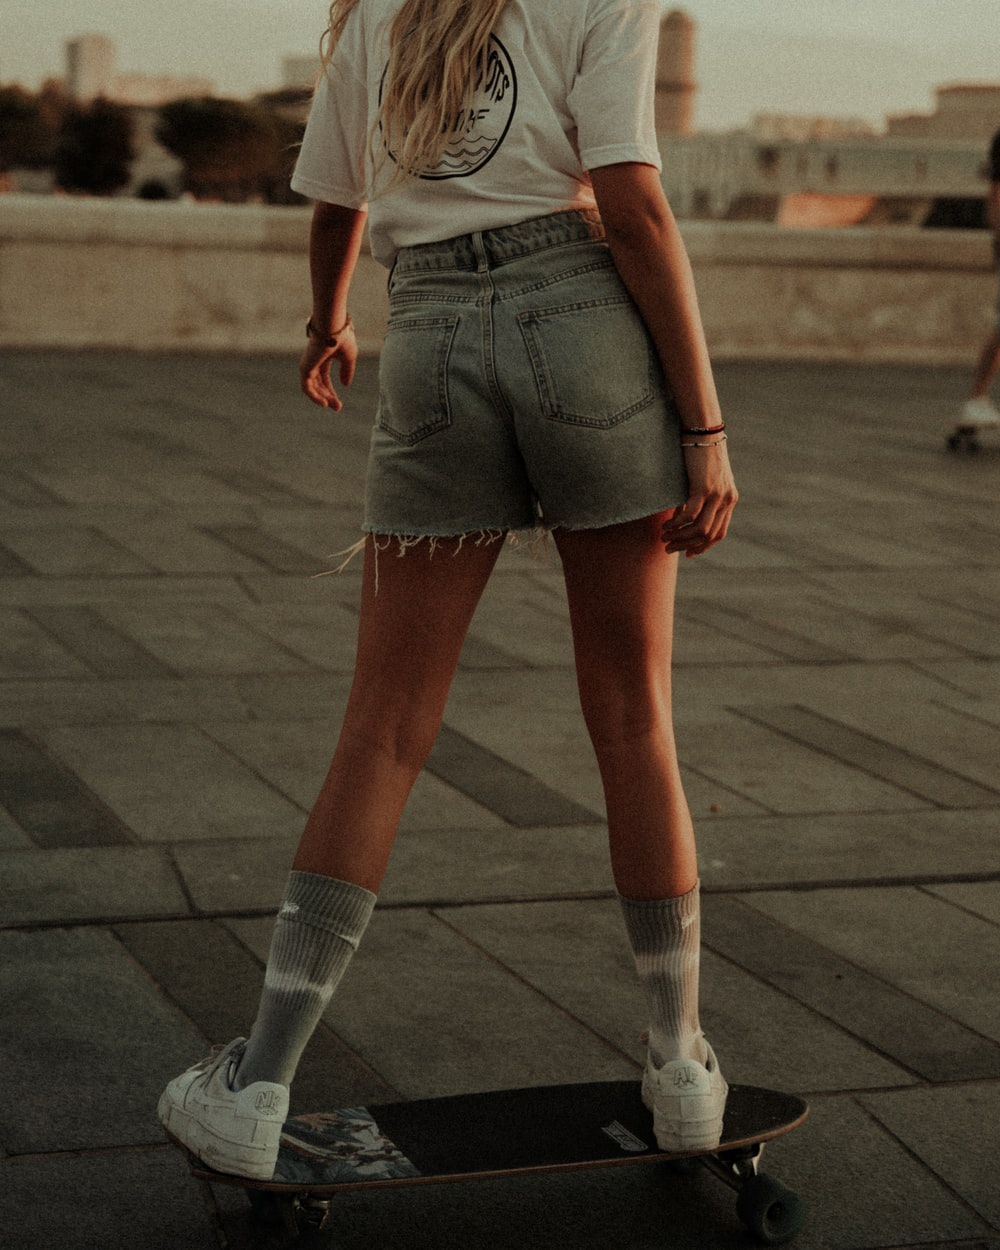 woman in blue denim shorts and white shirt standing on brown concrete floor during daytime